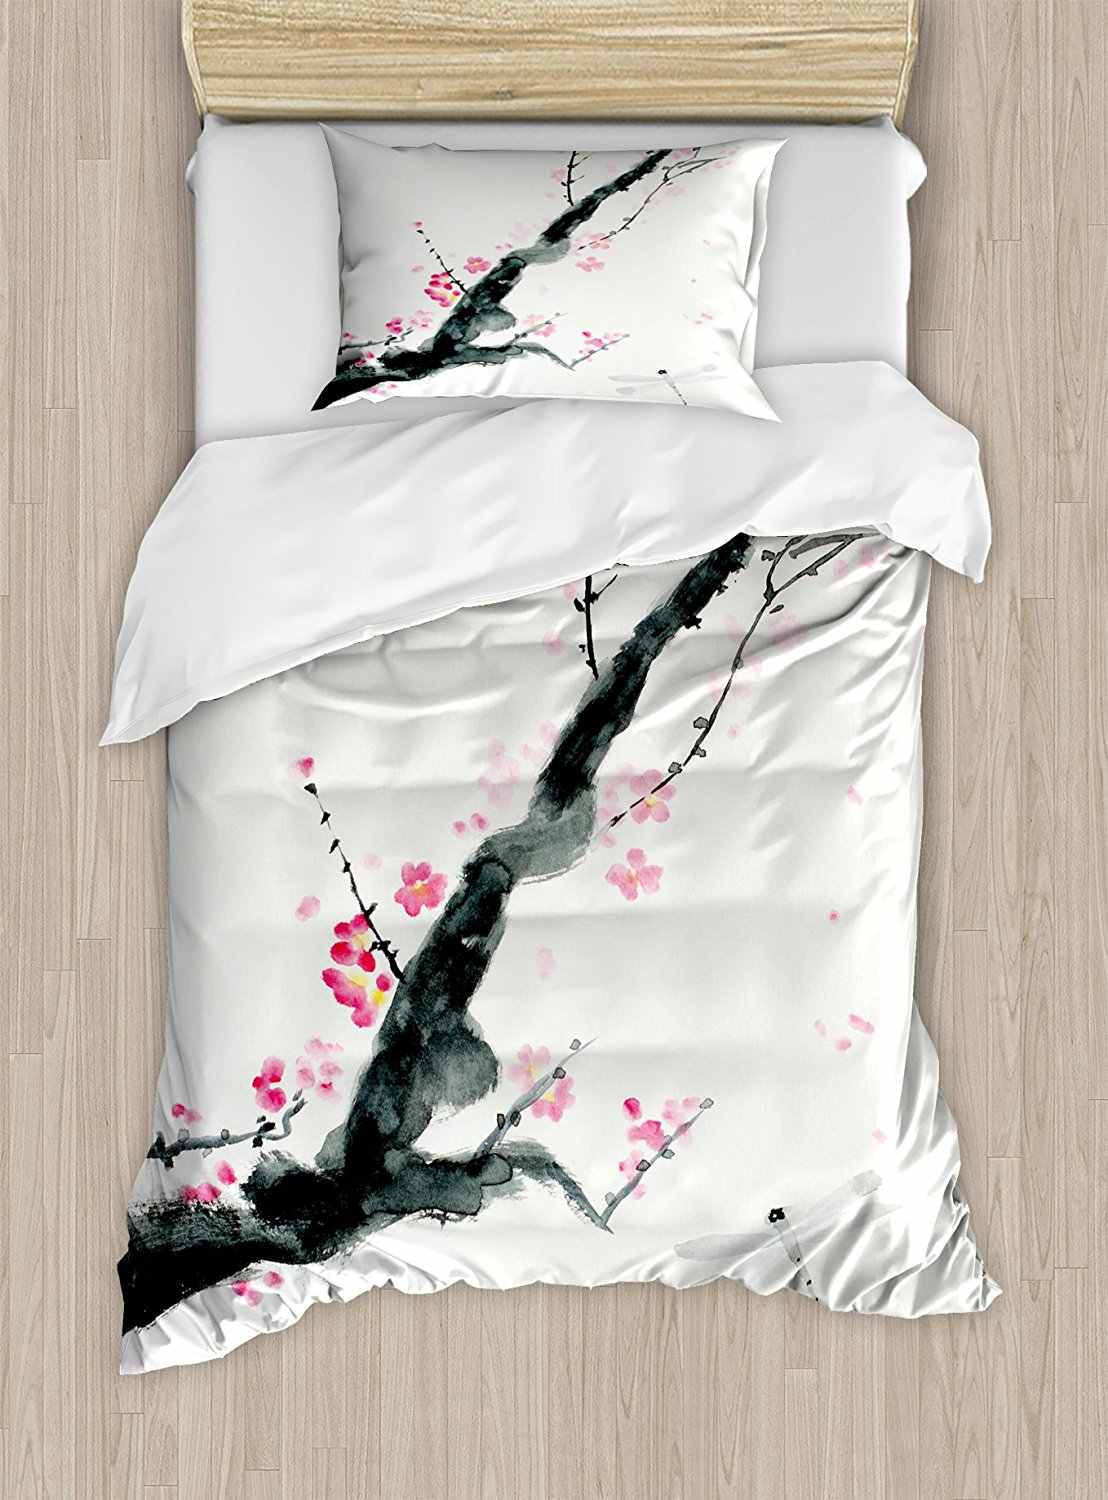 Dragonfly Duvet Cover Set Branch of a Pink Cherry Blossom Sakura Tree Bud and A Dragonfly Dramatic Artisan Decor Bedding Set